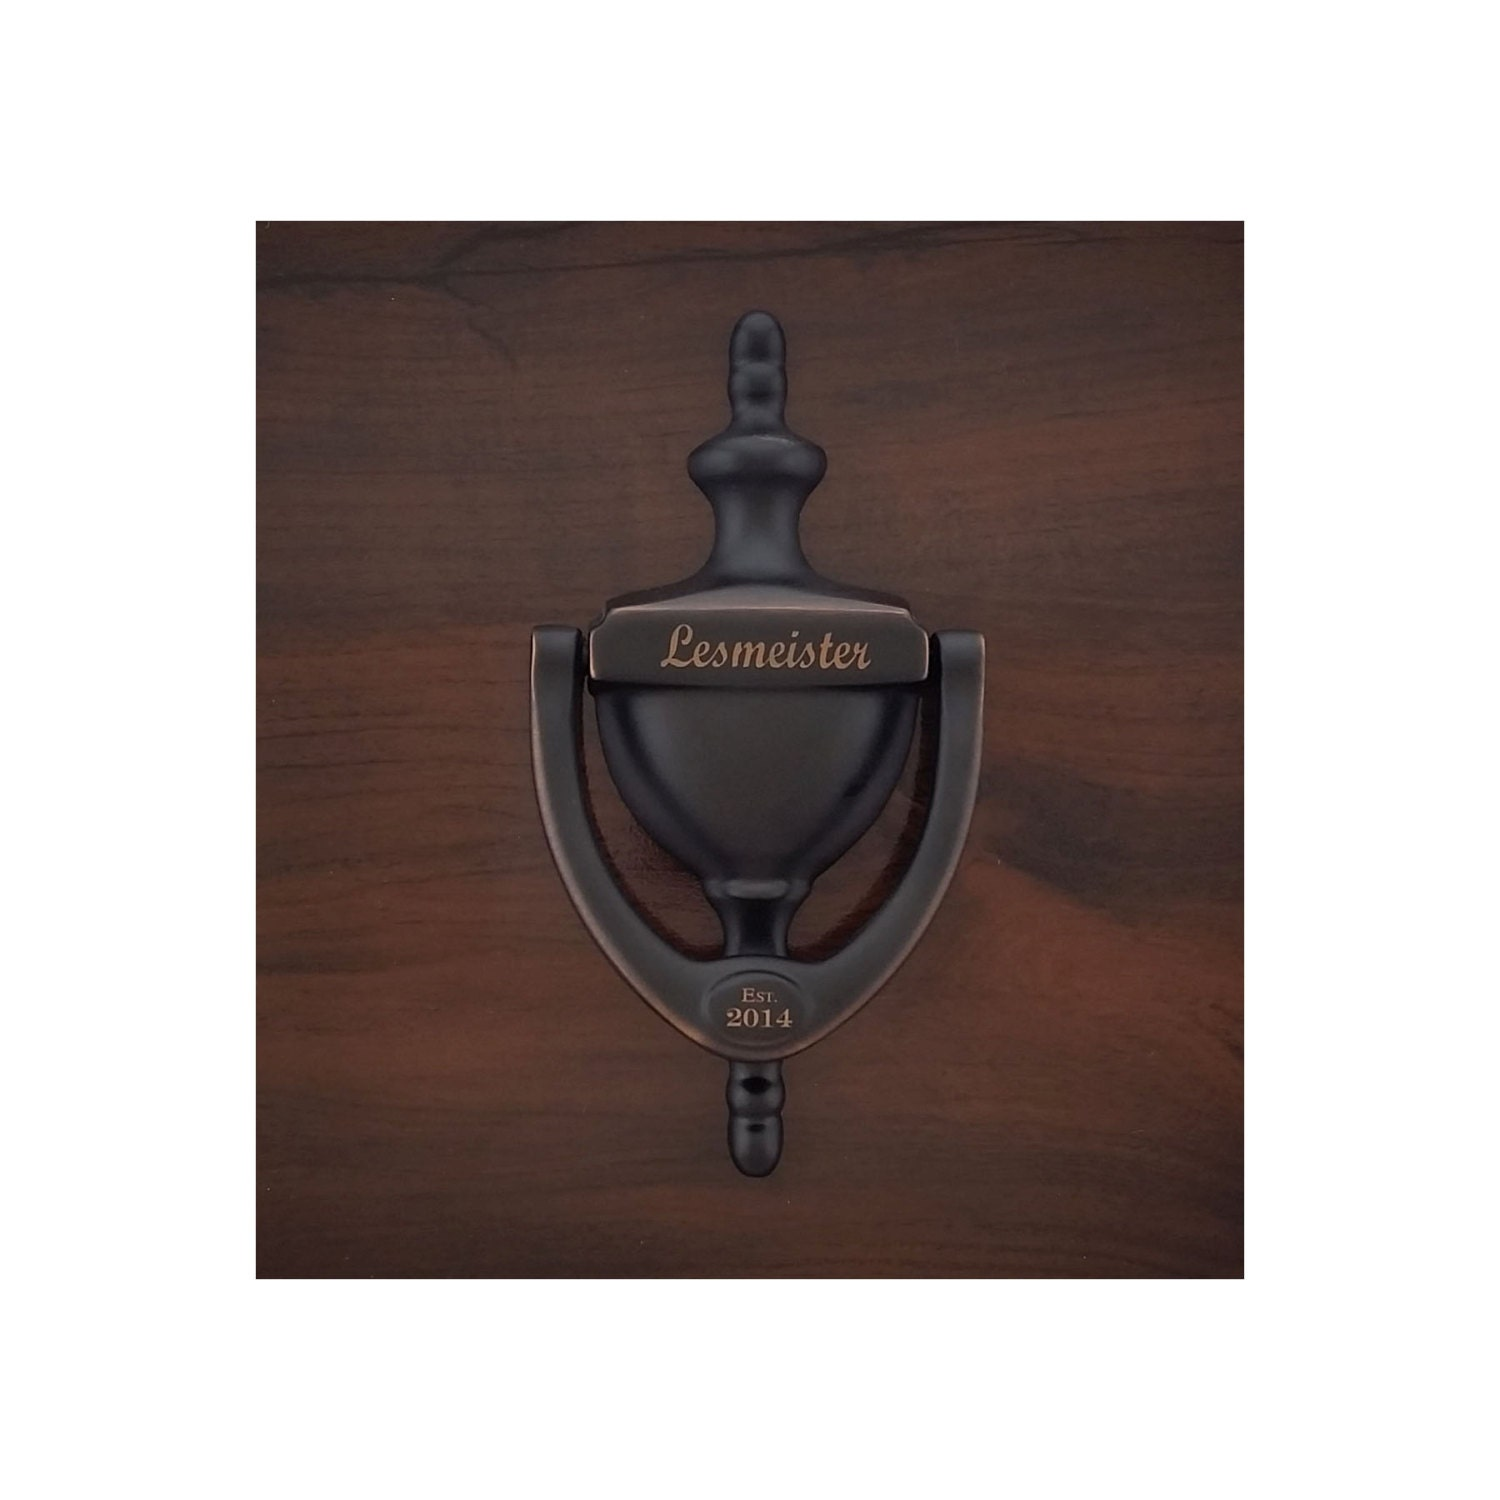 PERSONALIZED DOOR KNOCKER, Engraved, Aged, Venetian Bronze Finish,  Personalized, Gift Boxed, Realtor, Builder